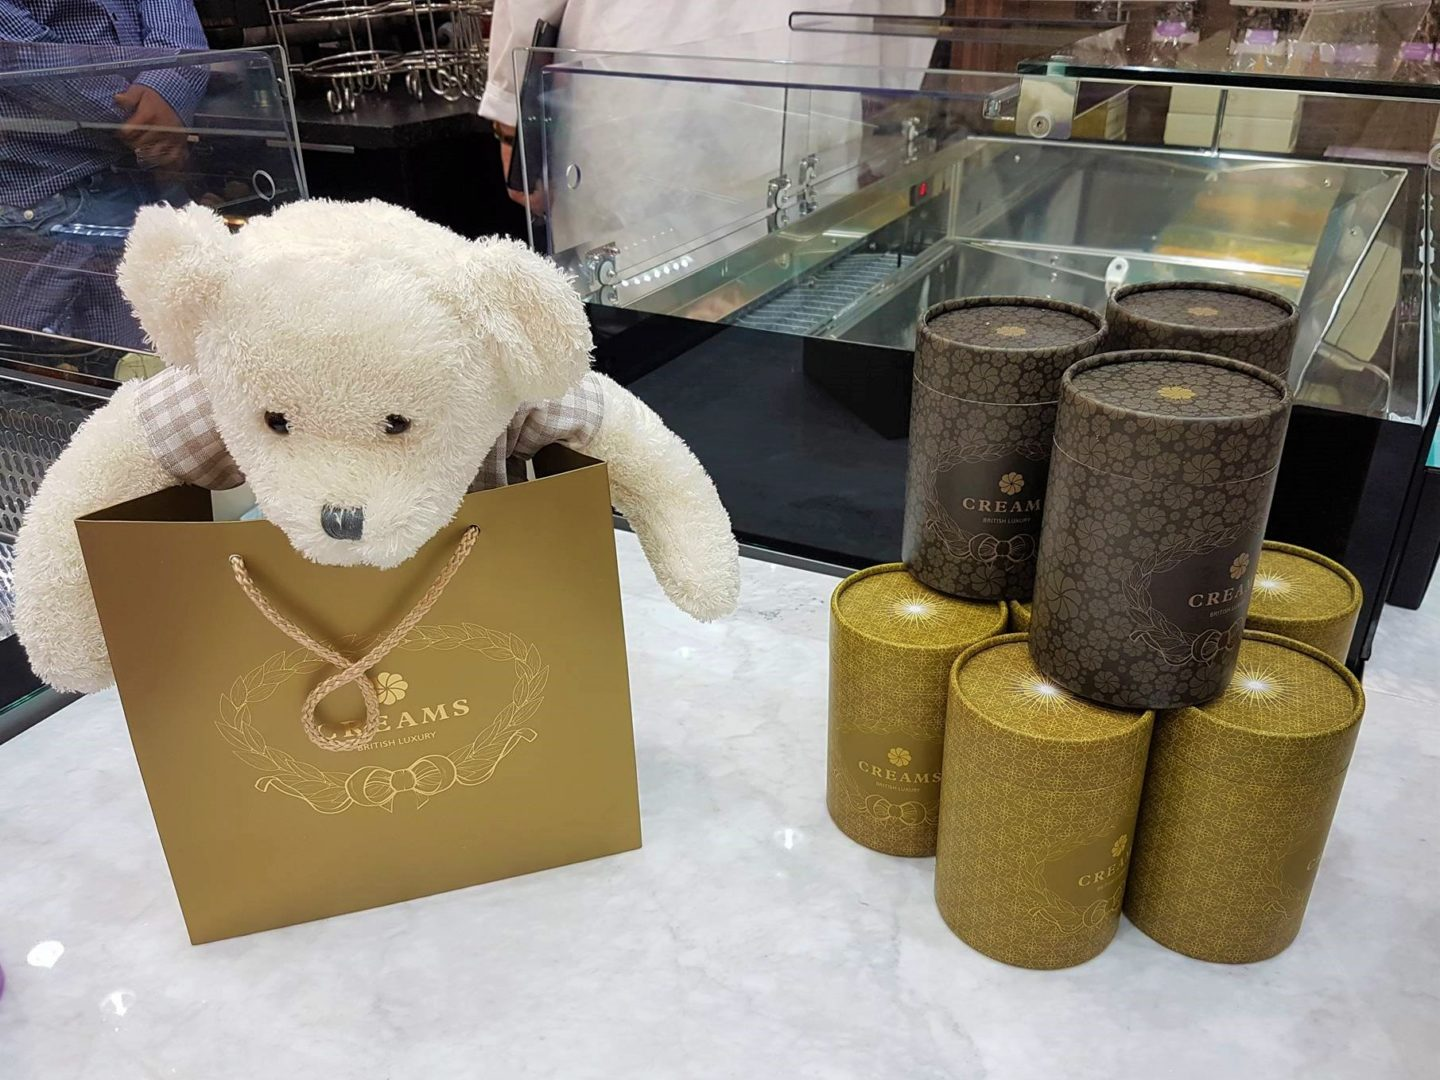 Teddy gift at Creams British Luxury